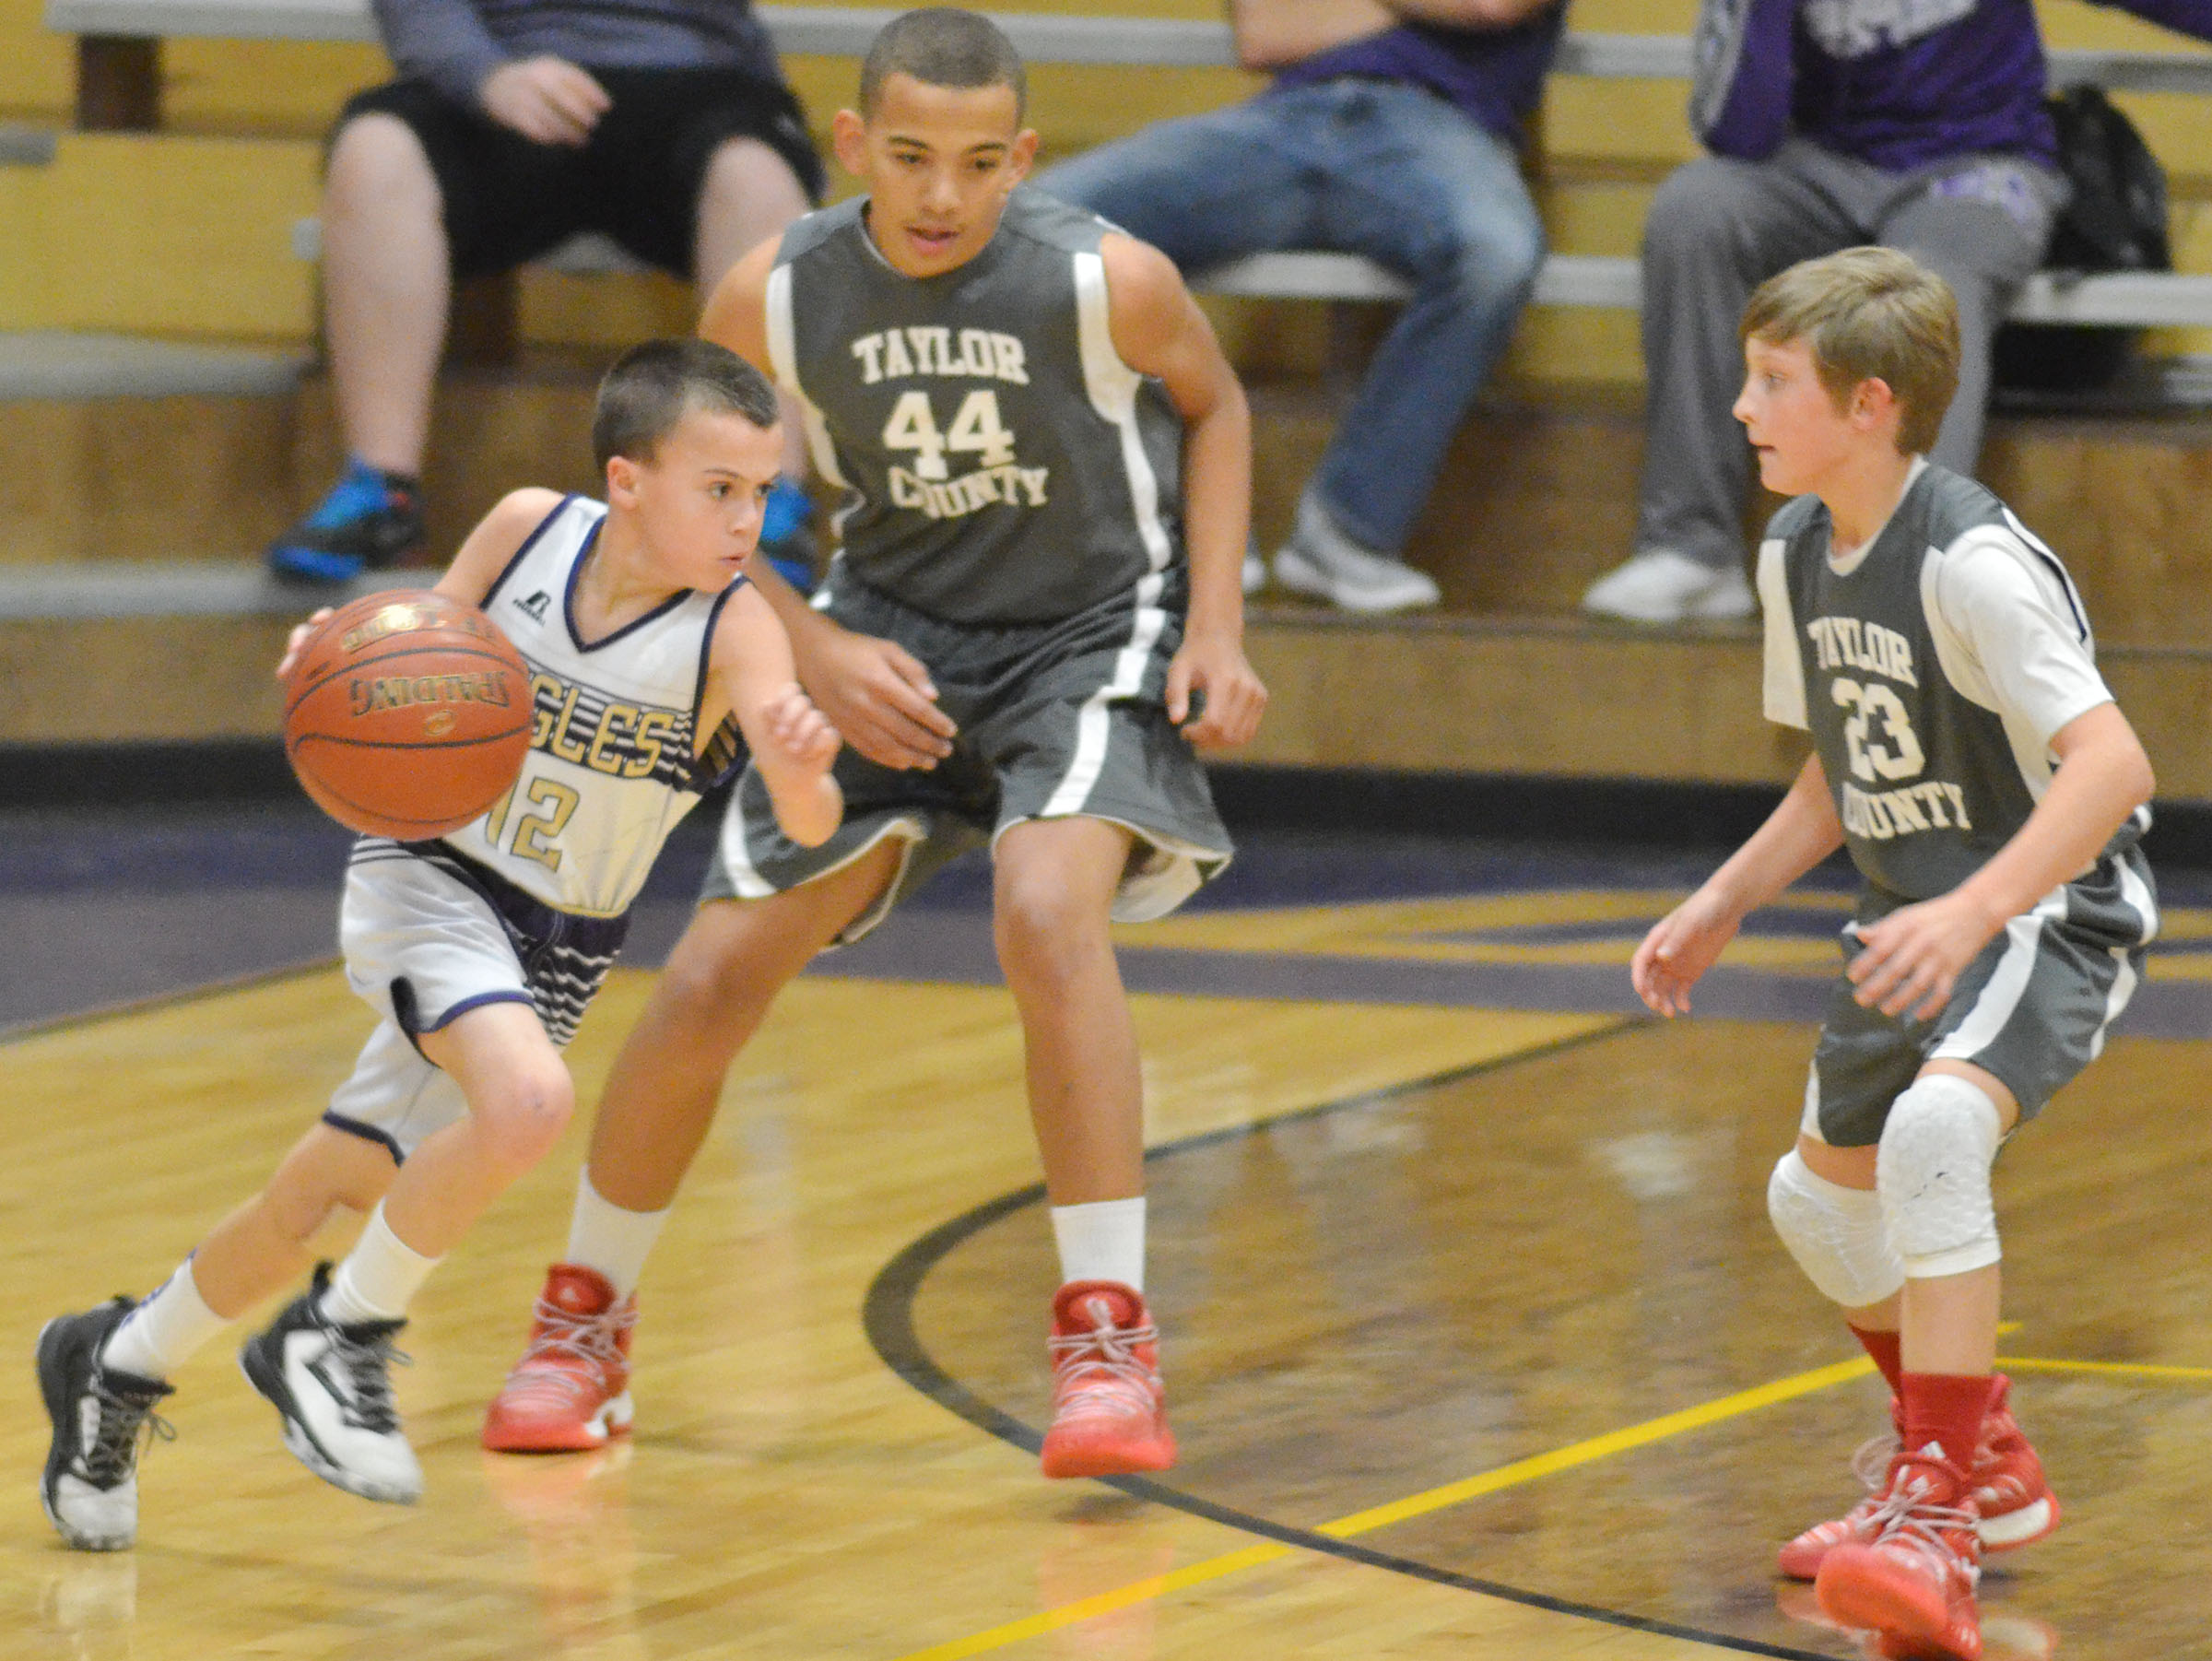 CMS sixth-grader Chase Hord drives the ball.